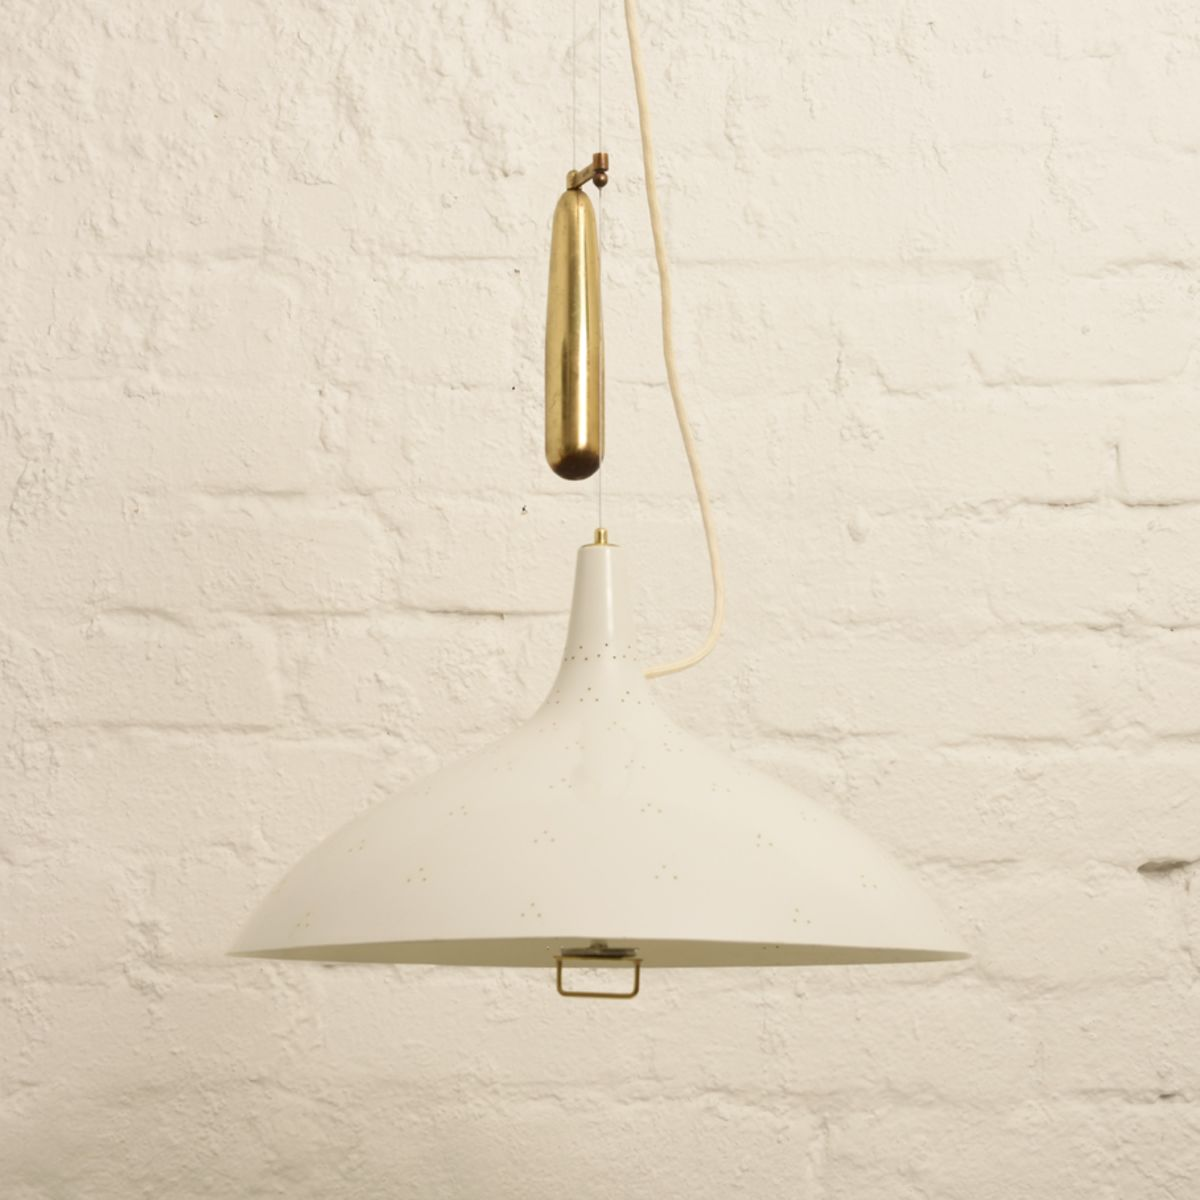 Tynell-Paavo_Counter-balanced-ceiling-light